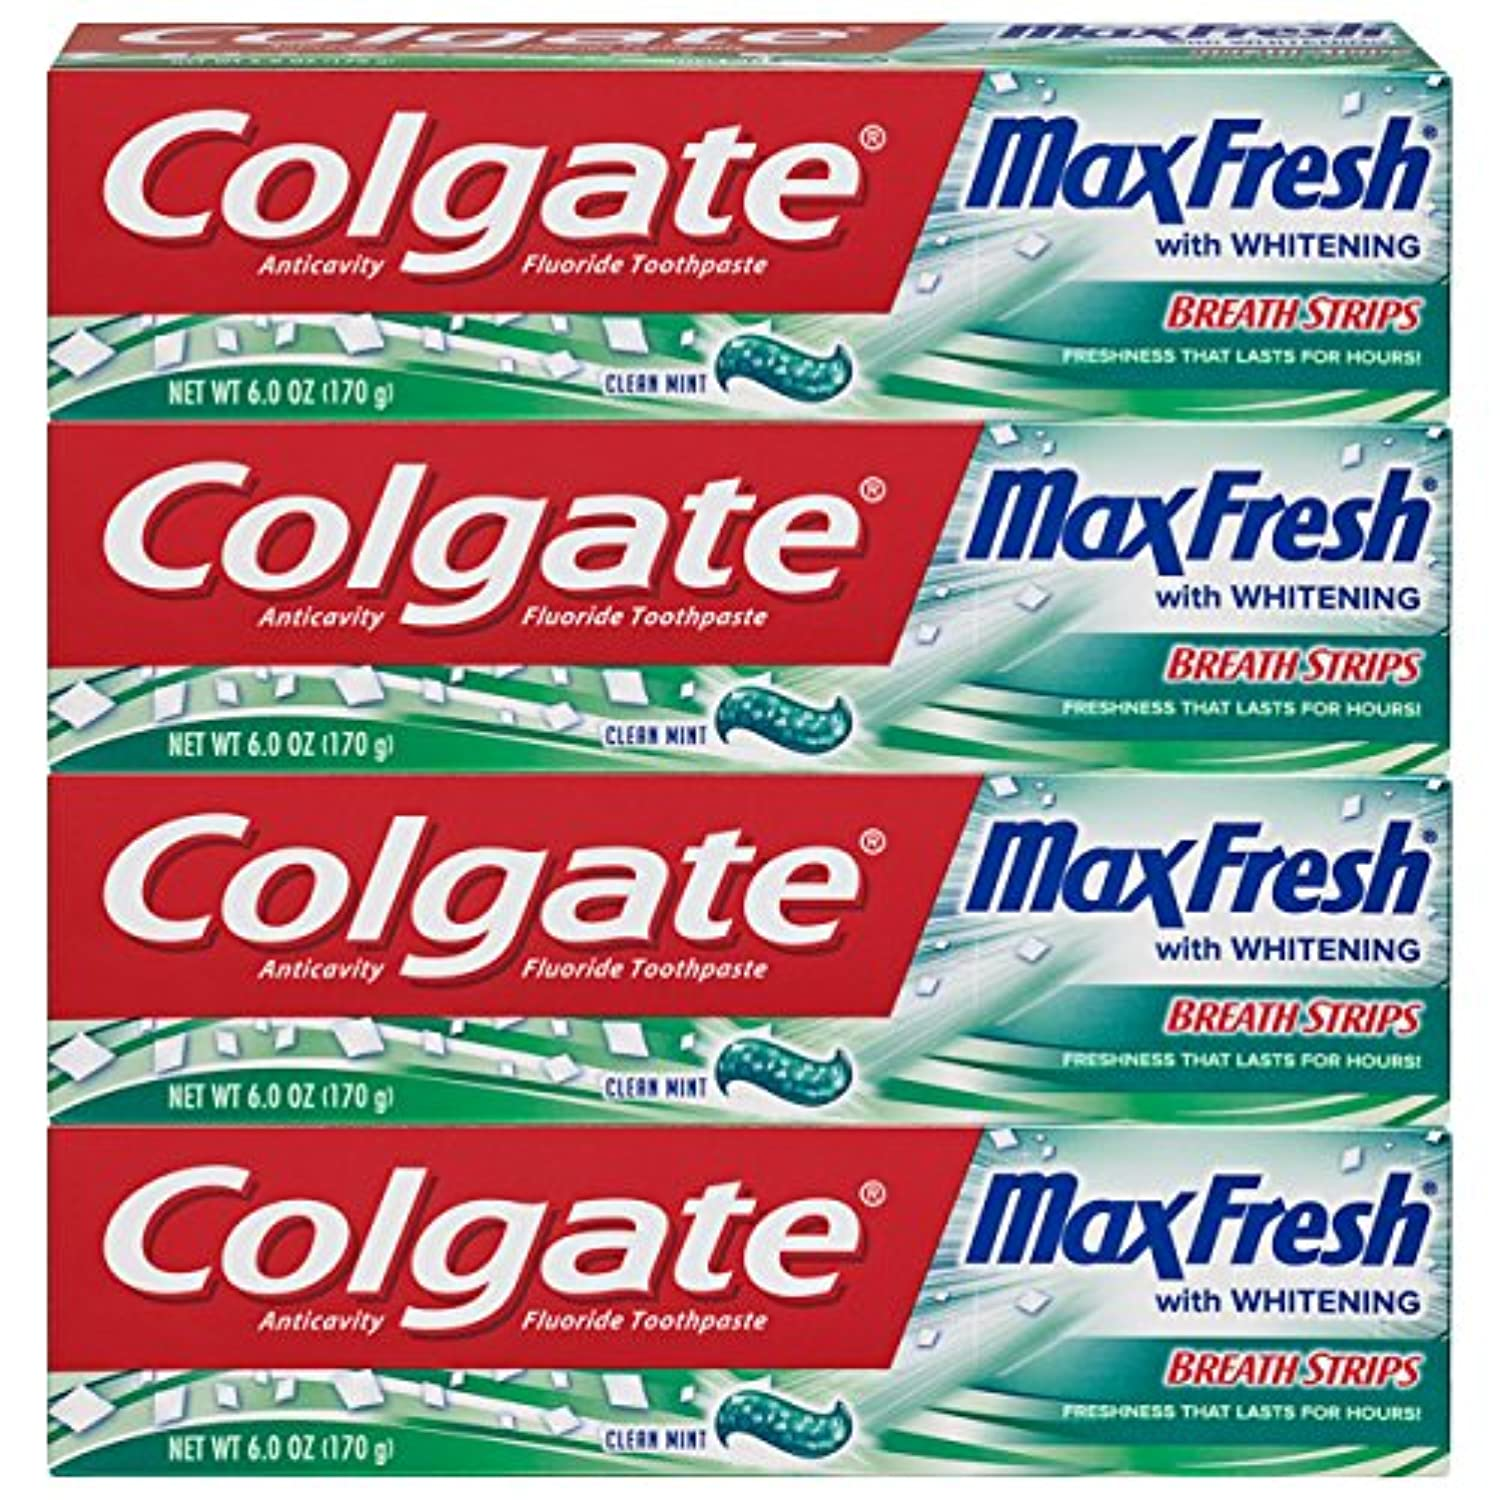 Classier: Buy Colgate Colgate Max Fresh Clean Mint Toothpaste with Mini Breath Strips, 4 Count